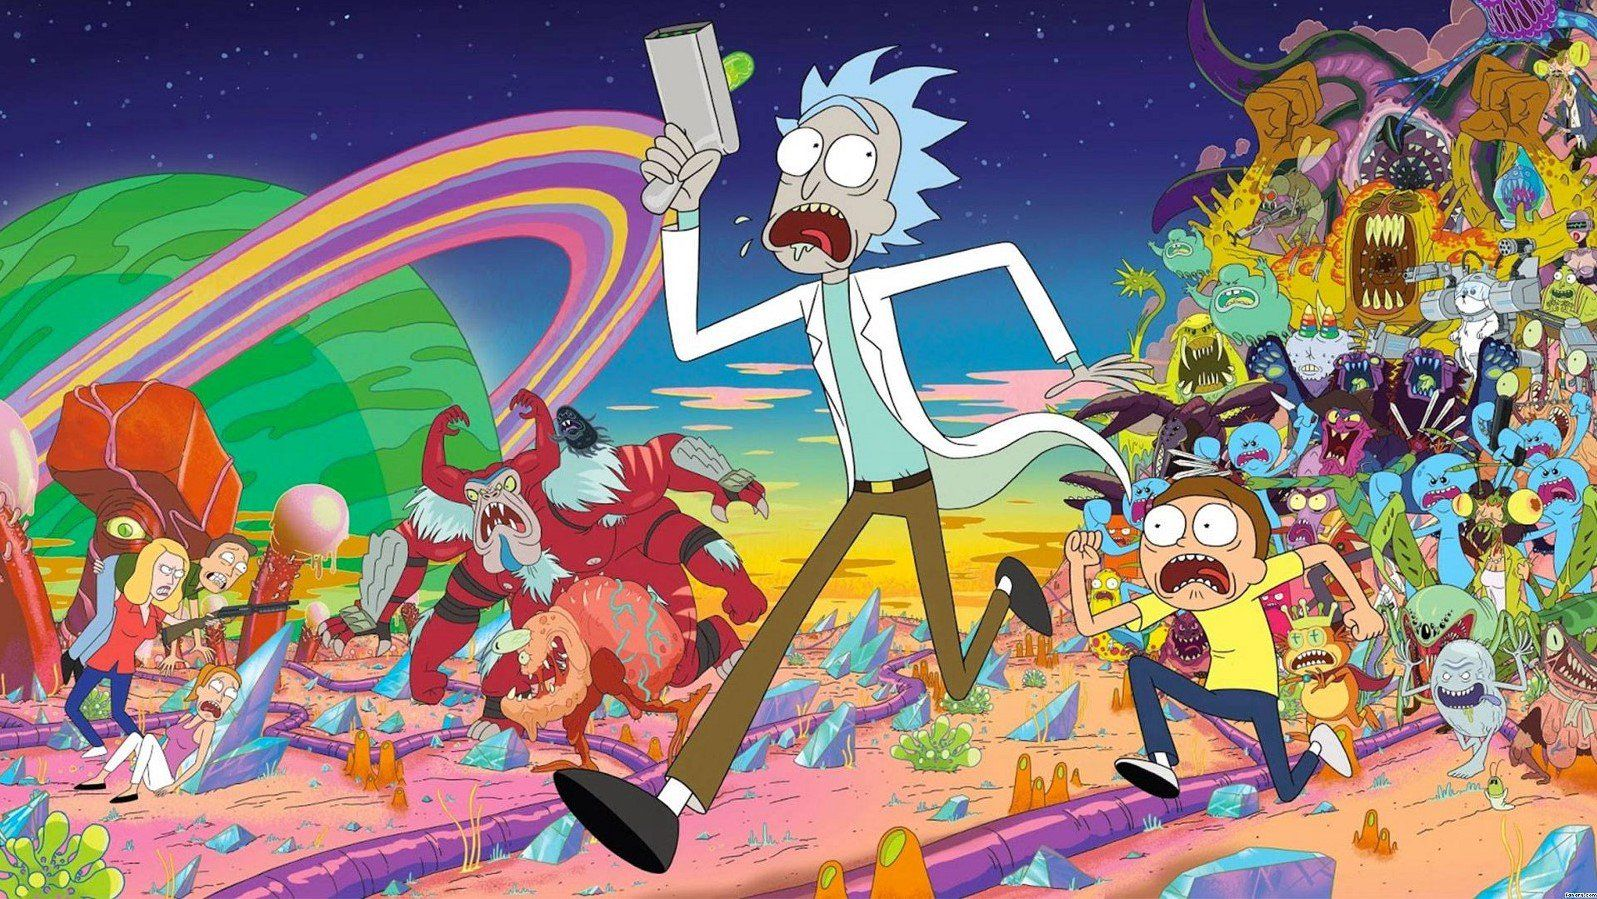 New Rick And Morty Footage Released Ahead Of Season 4 Rick And Morty Wallpapers Rick And Morty Poster Morty Wallpaper